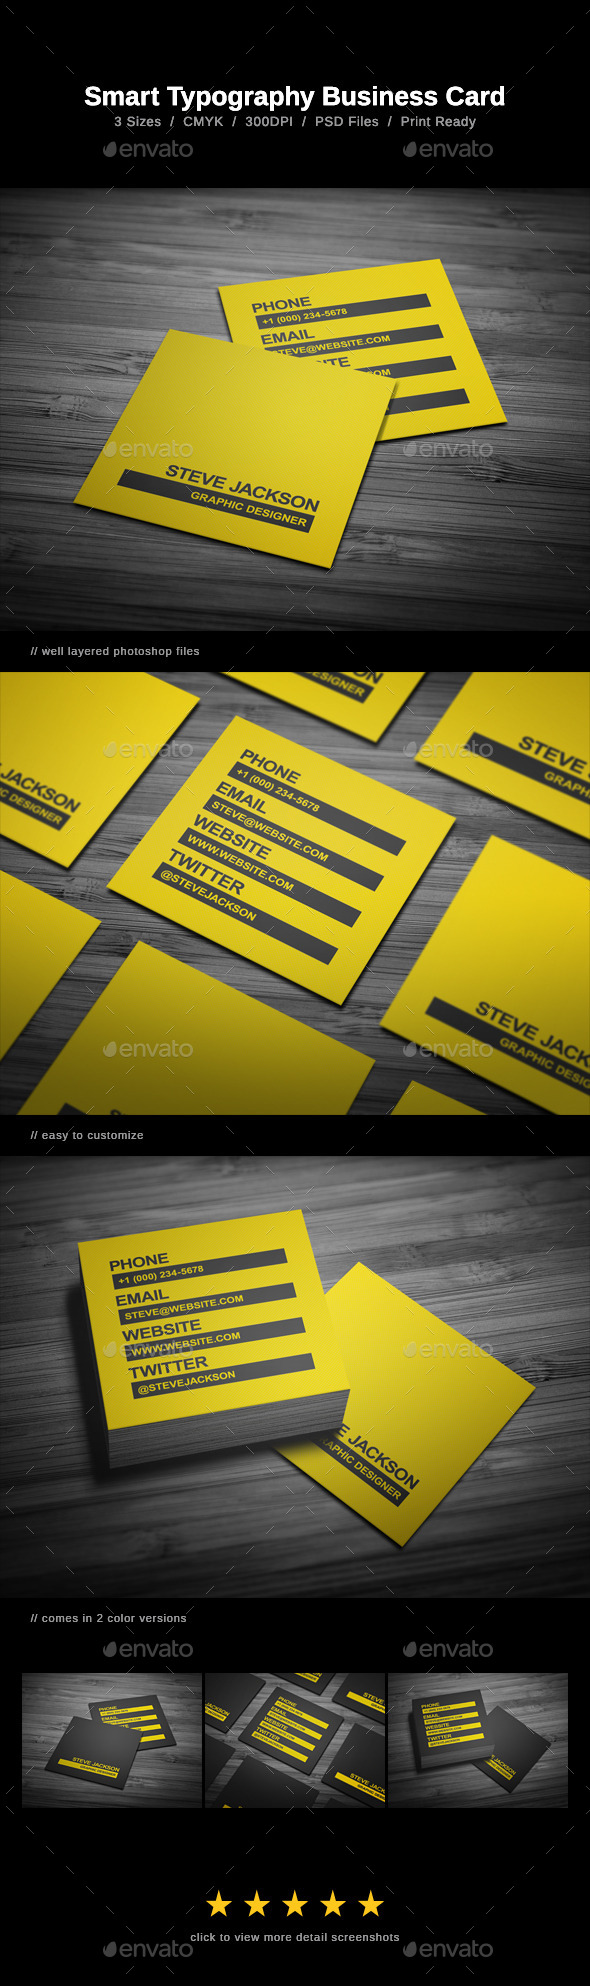 GraphicRiver Smart Typography Business Card 10289126